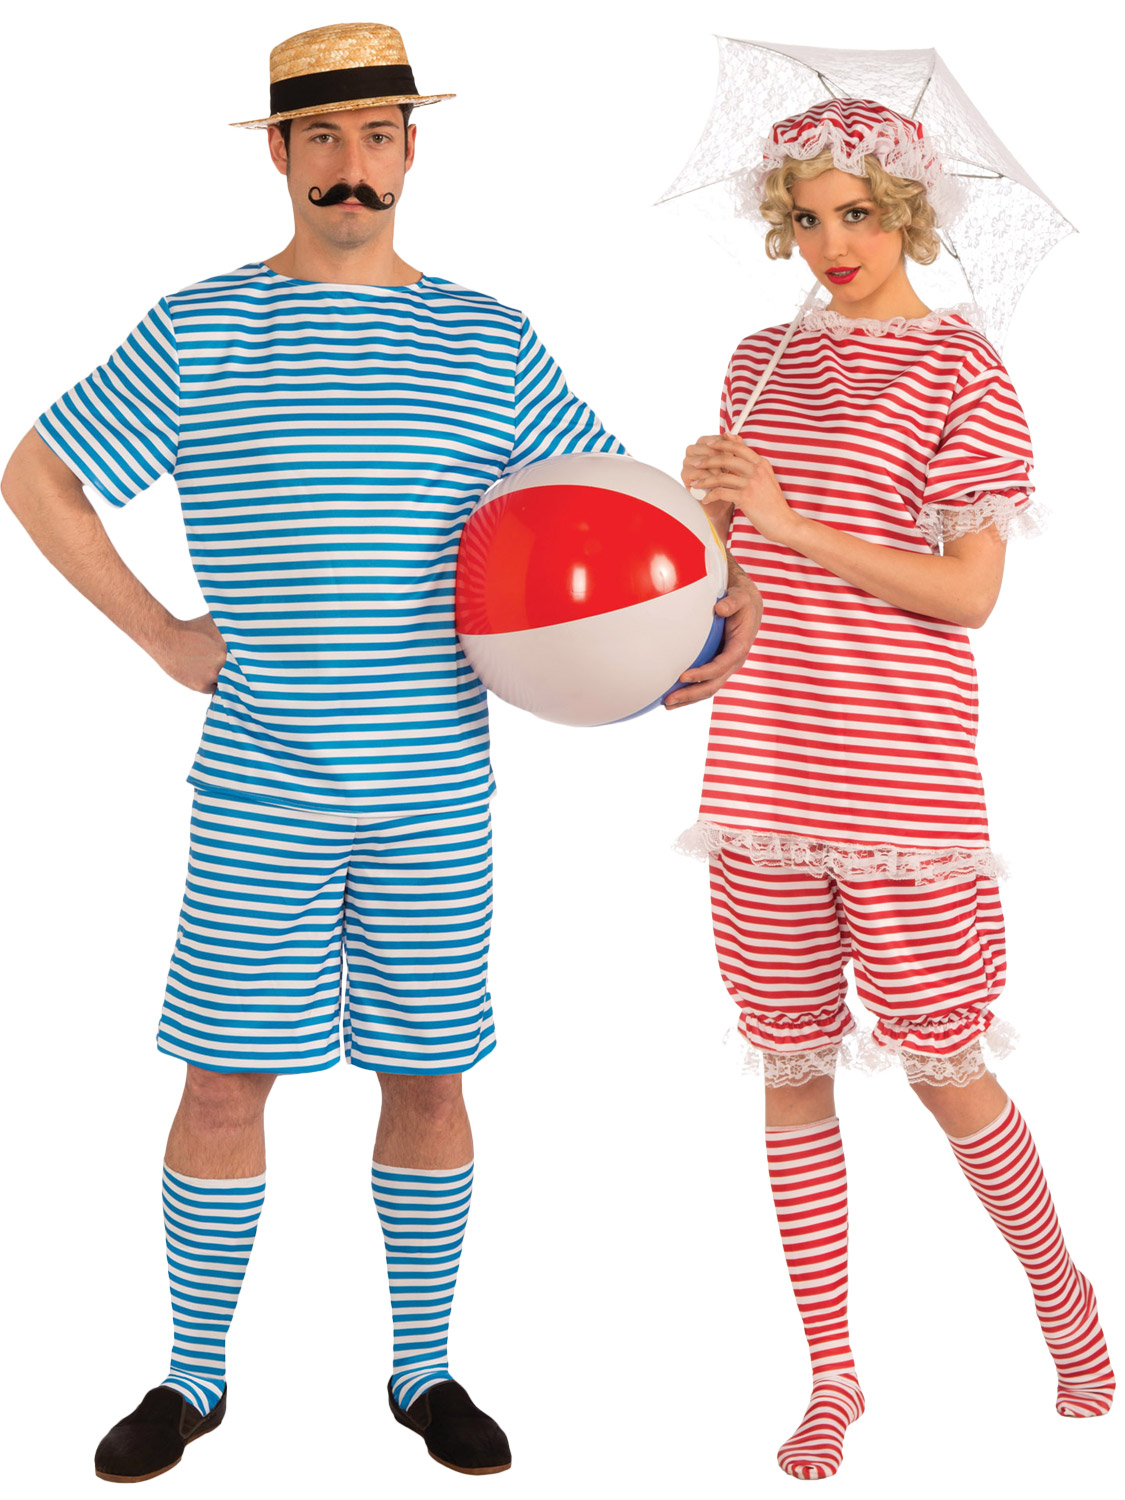 Nett Themed Fancy Dress Party Ideas Fotos - Brautkleider Ideen ...